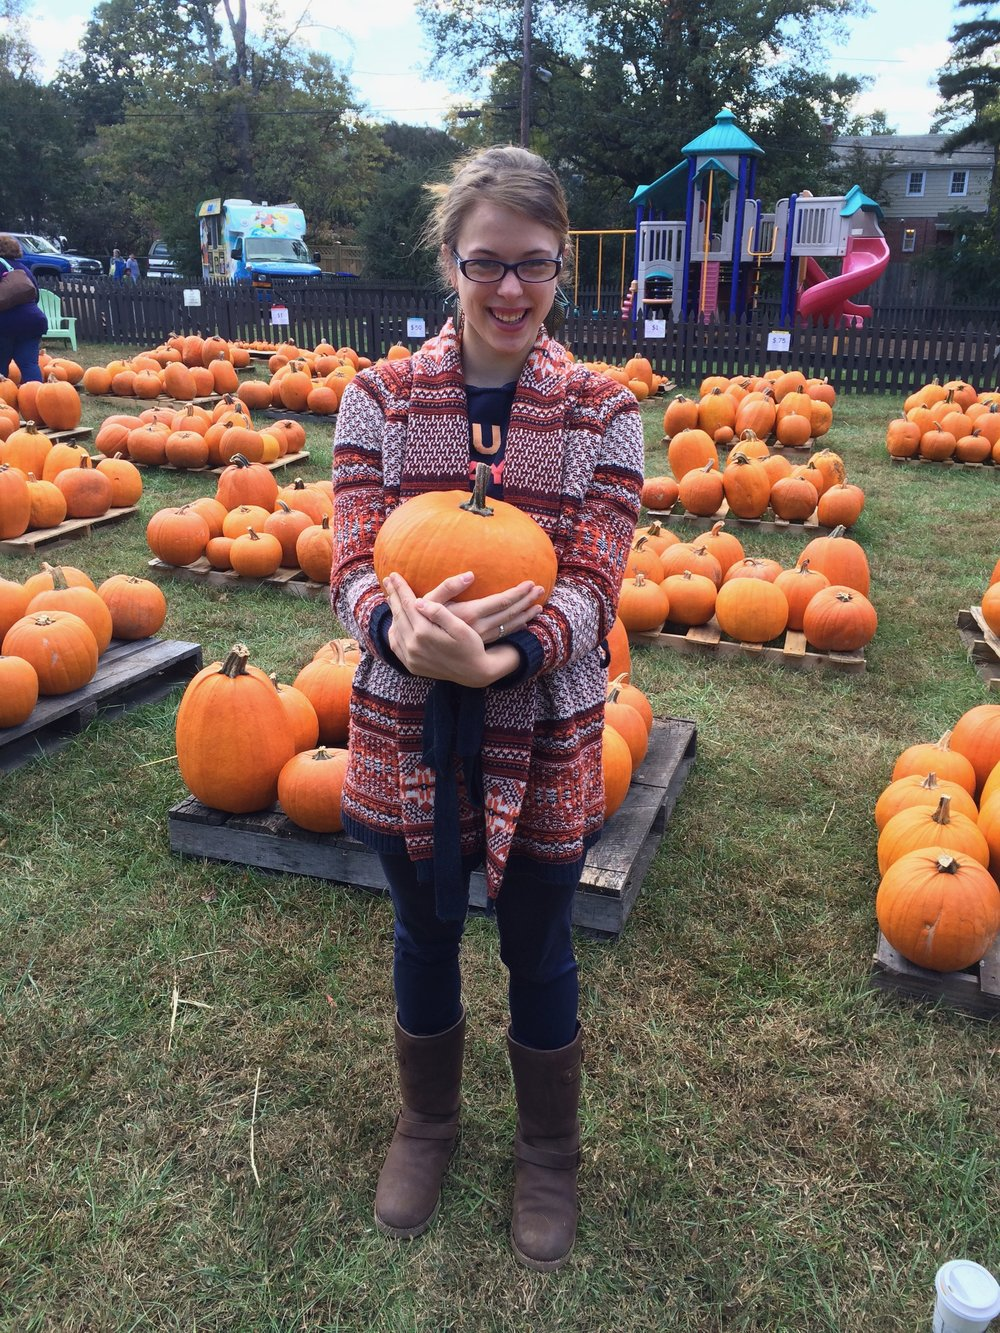 A REALLY bad picture of me with some fruit. But hey, this is a fruit themed post. Yes, the internet says pumpkins are fruit. No, I did not buy this pumpkin from the Fruit Meister.